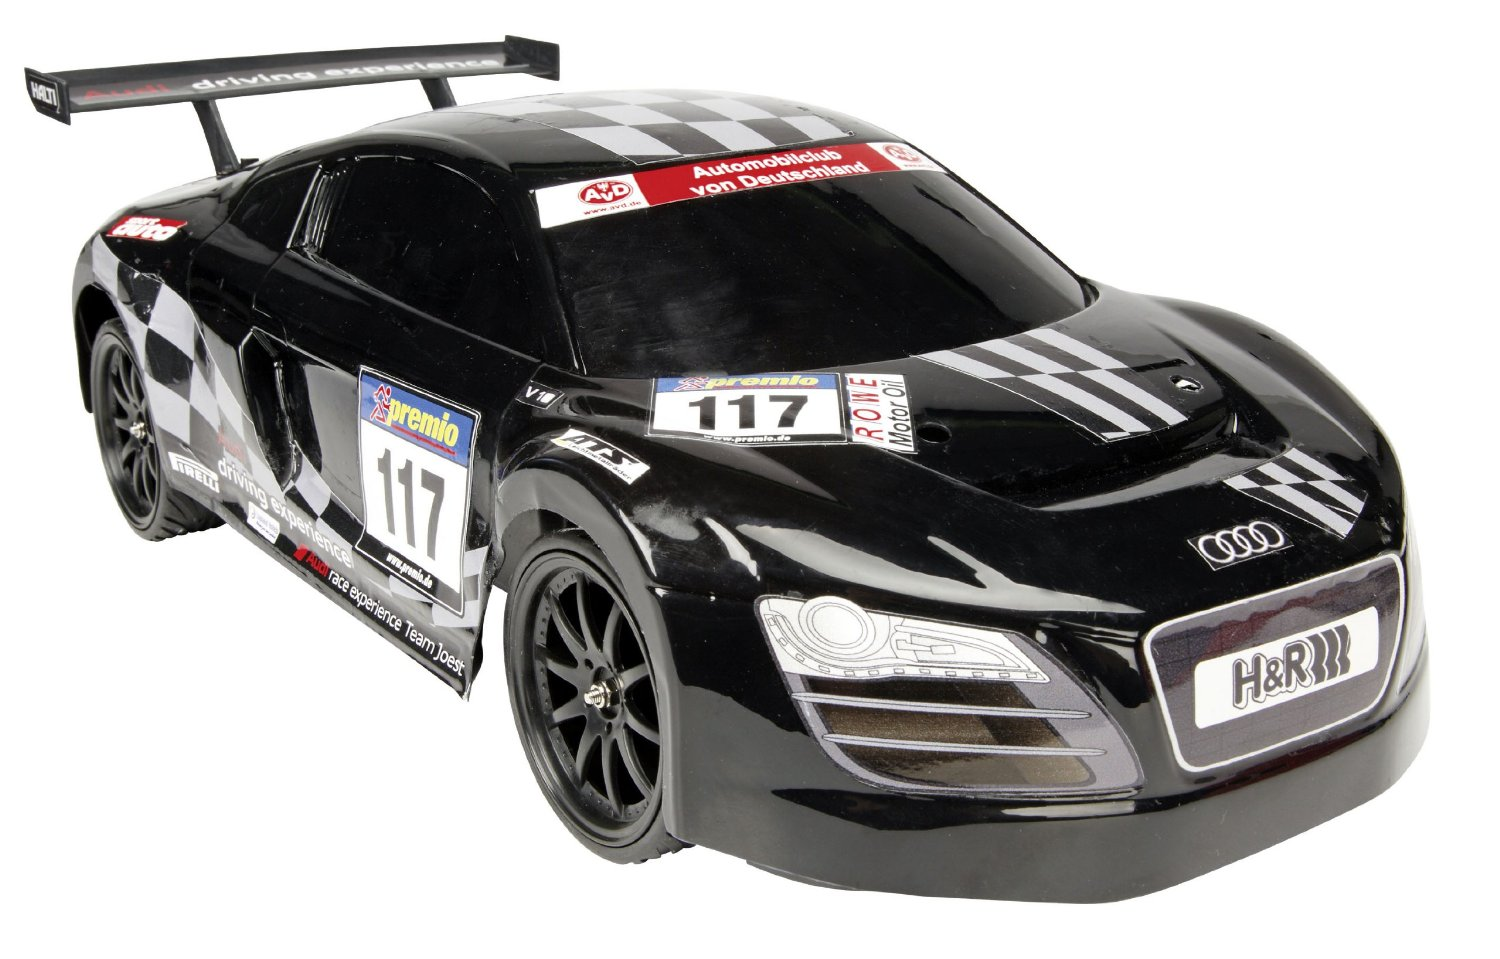 smoby radio control audi r8 rc audi r8 remote control. Black Bedroom Furniture Sets. Home Design Ideas